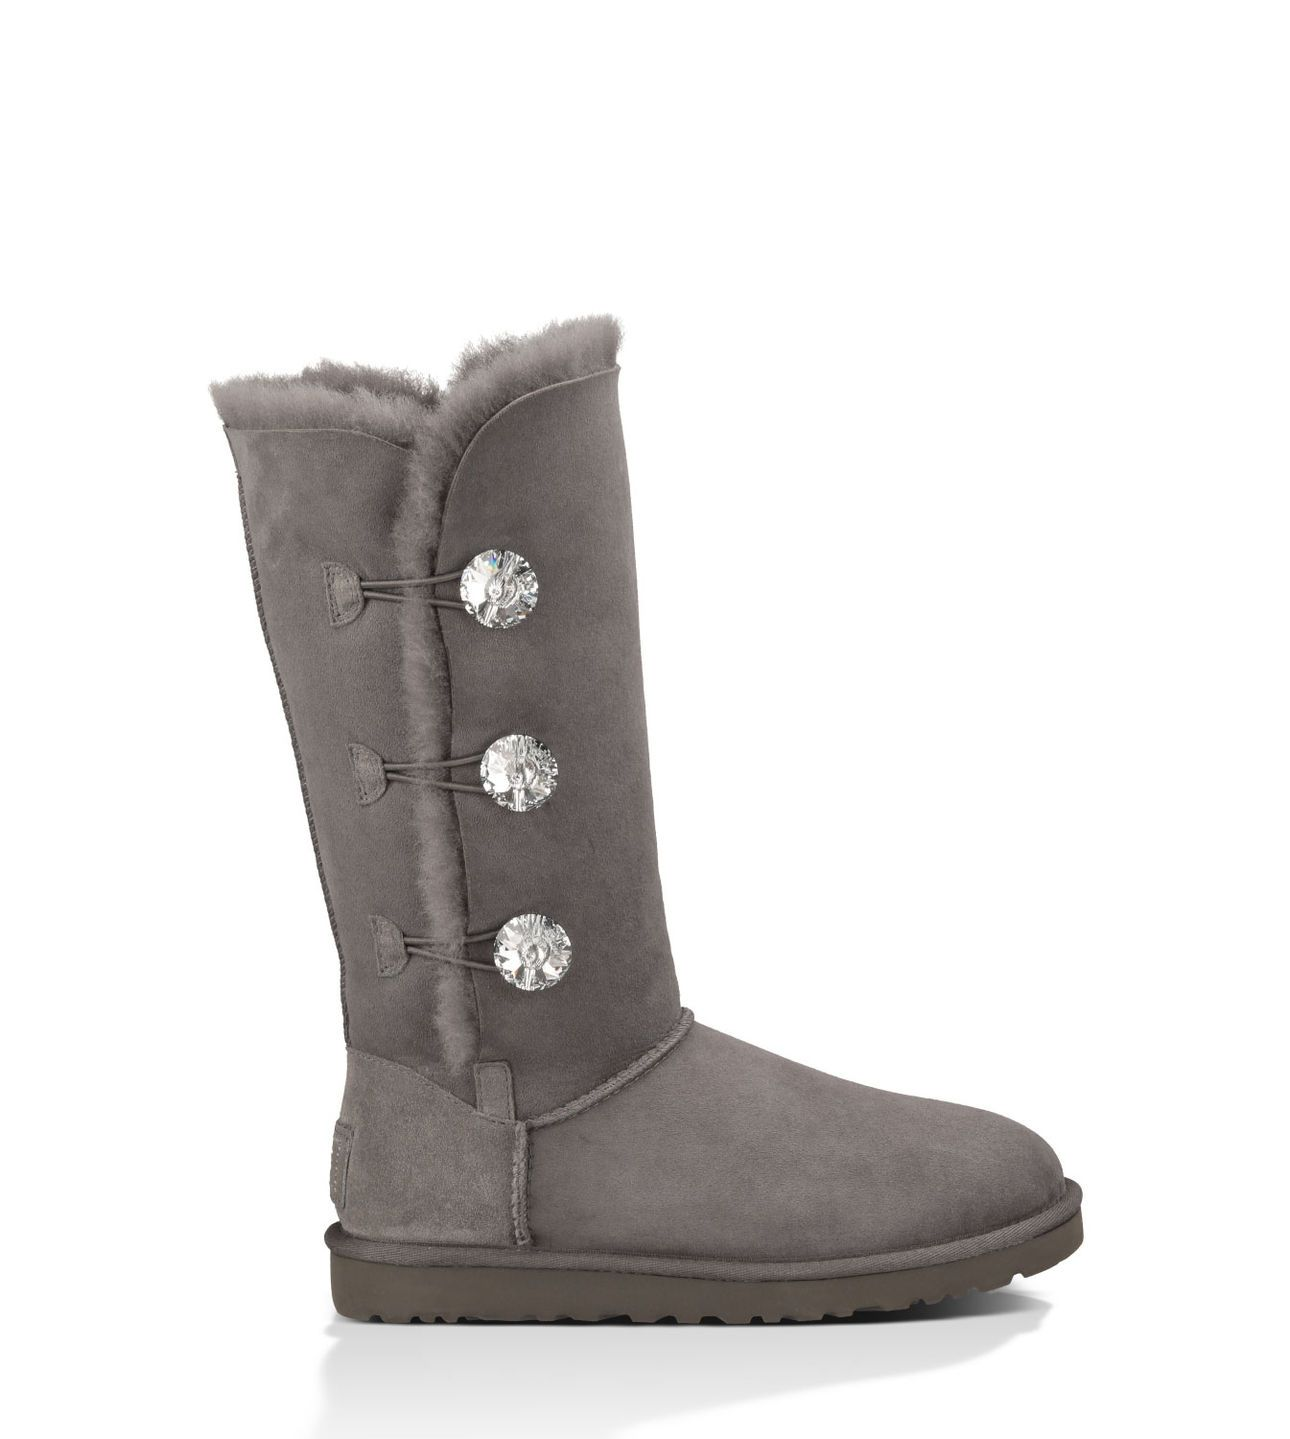 fa4bd1bd560 The OFFICIAL UGG® store has the Bailey Button Bling Triplet in the ...